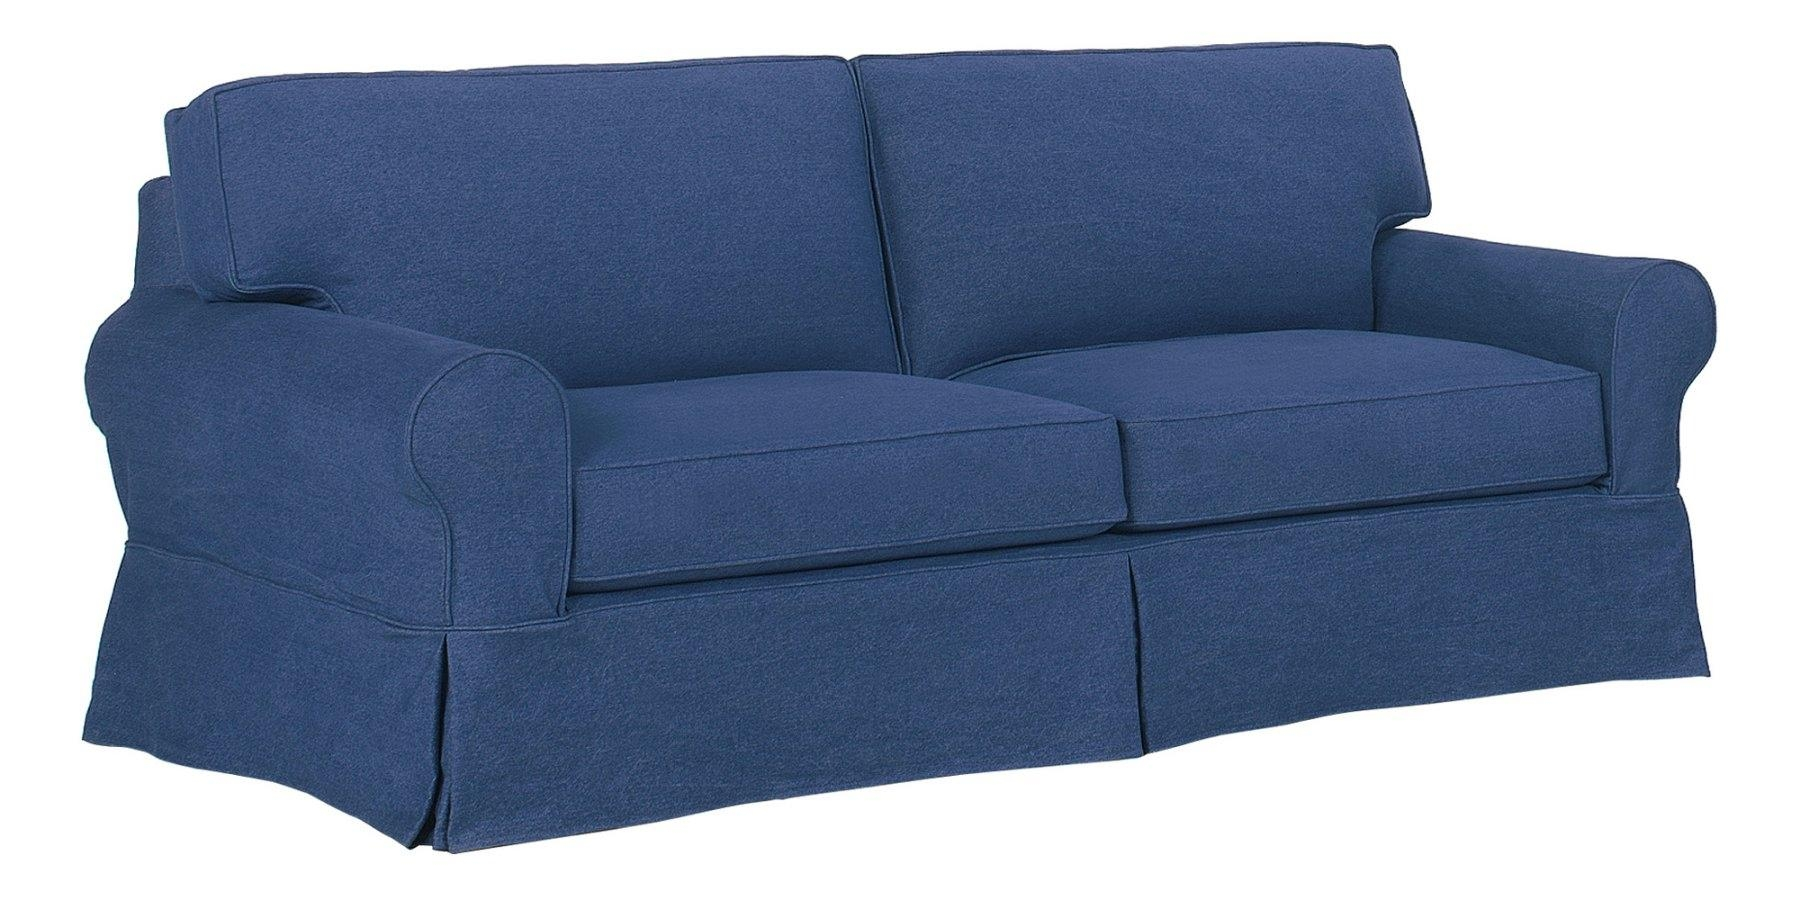 20 Collection Of Denim Sofa Slipcovers Sofa Ideas